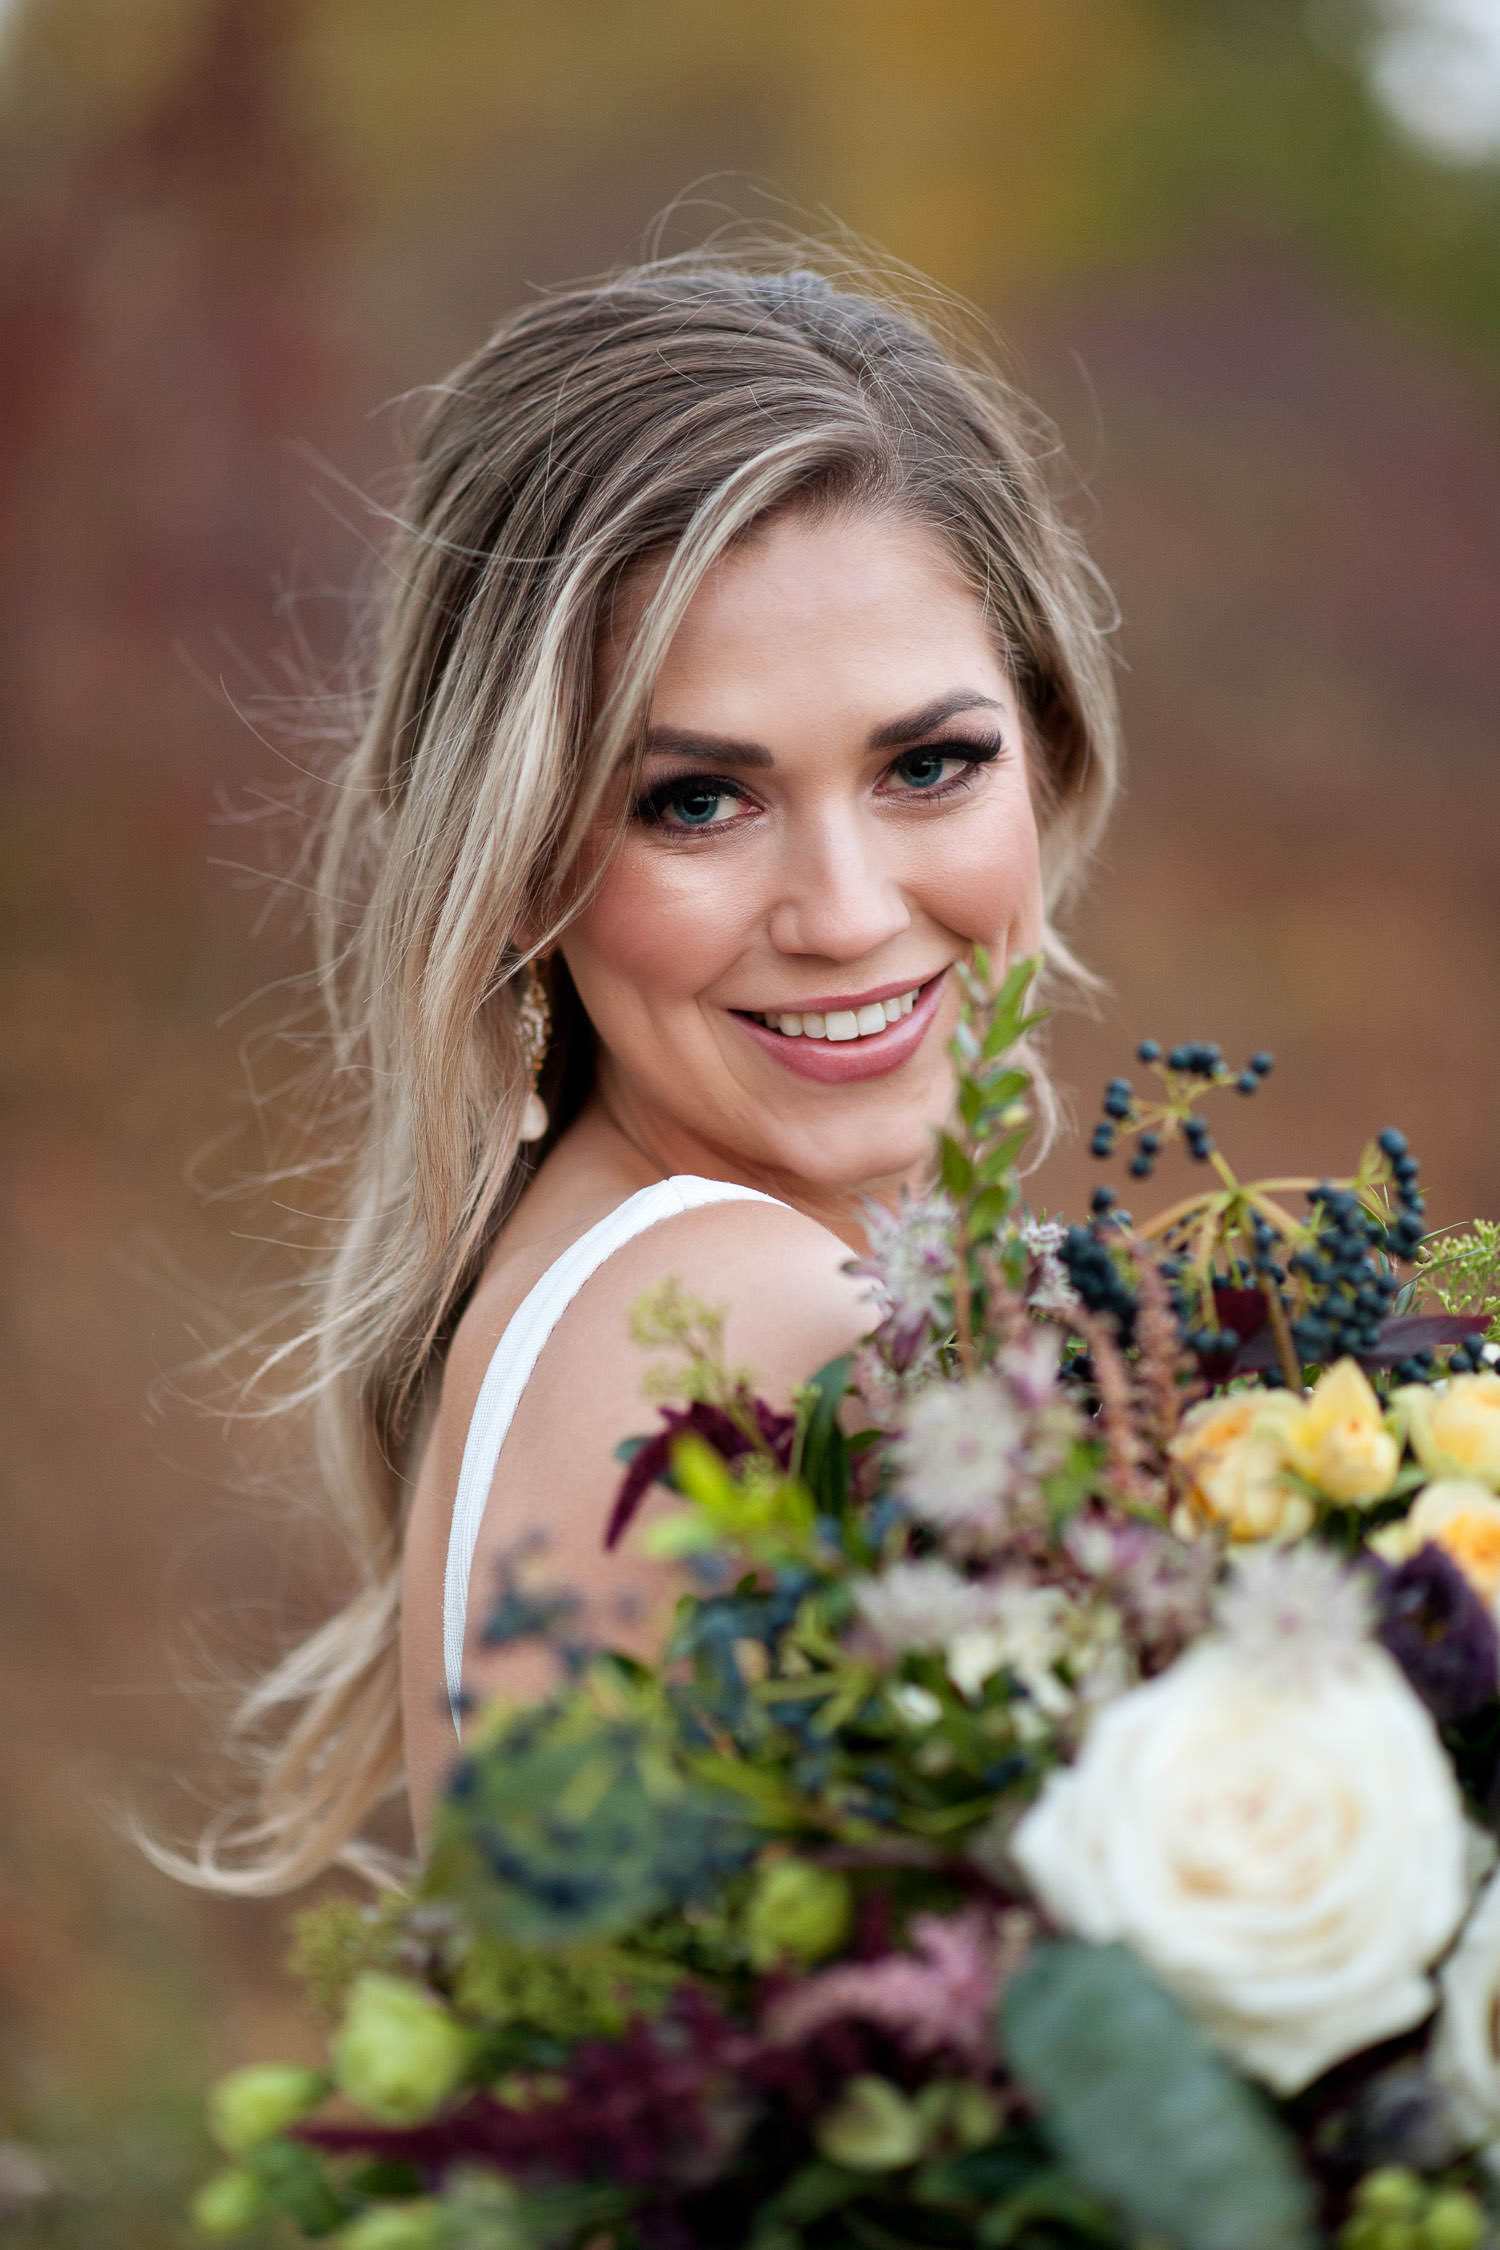 bride carries fall bridal bouquet from Fleurish Flower Shop captured by Tara Whittaker Photography